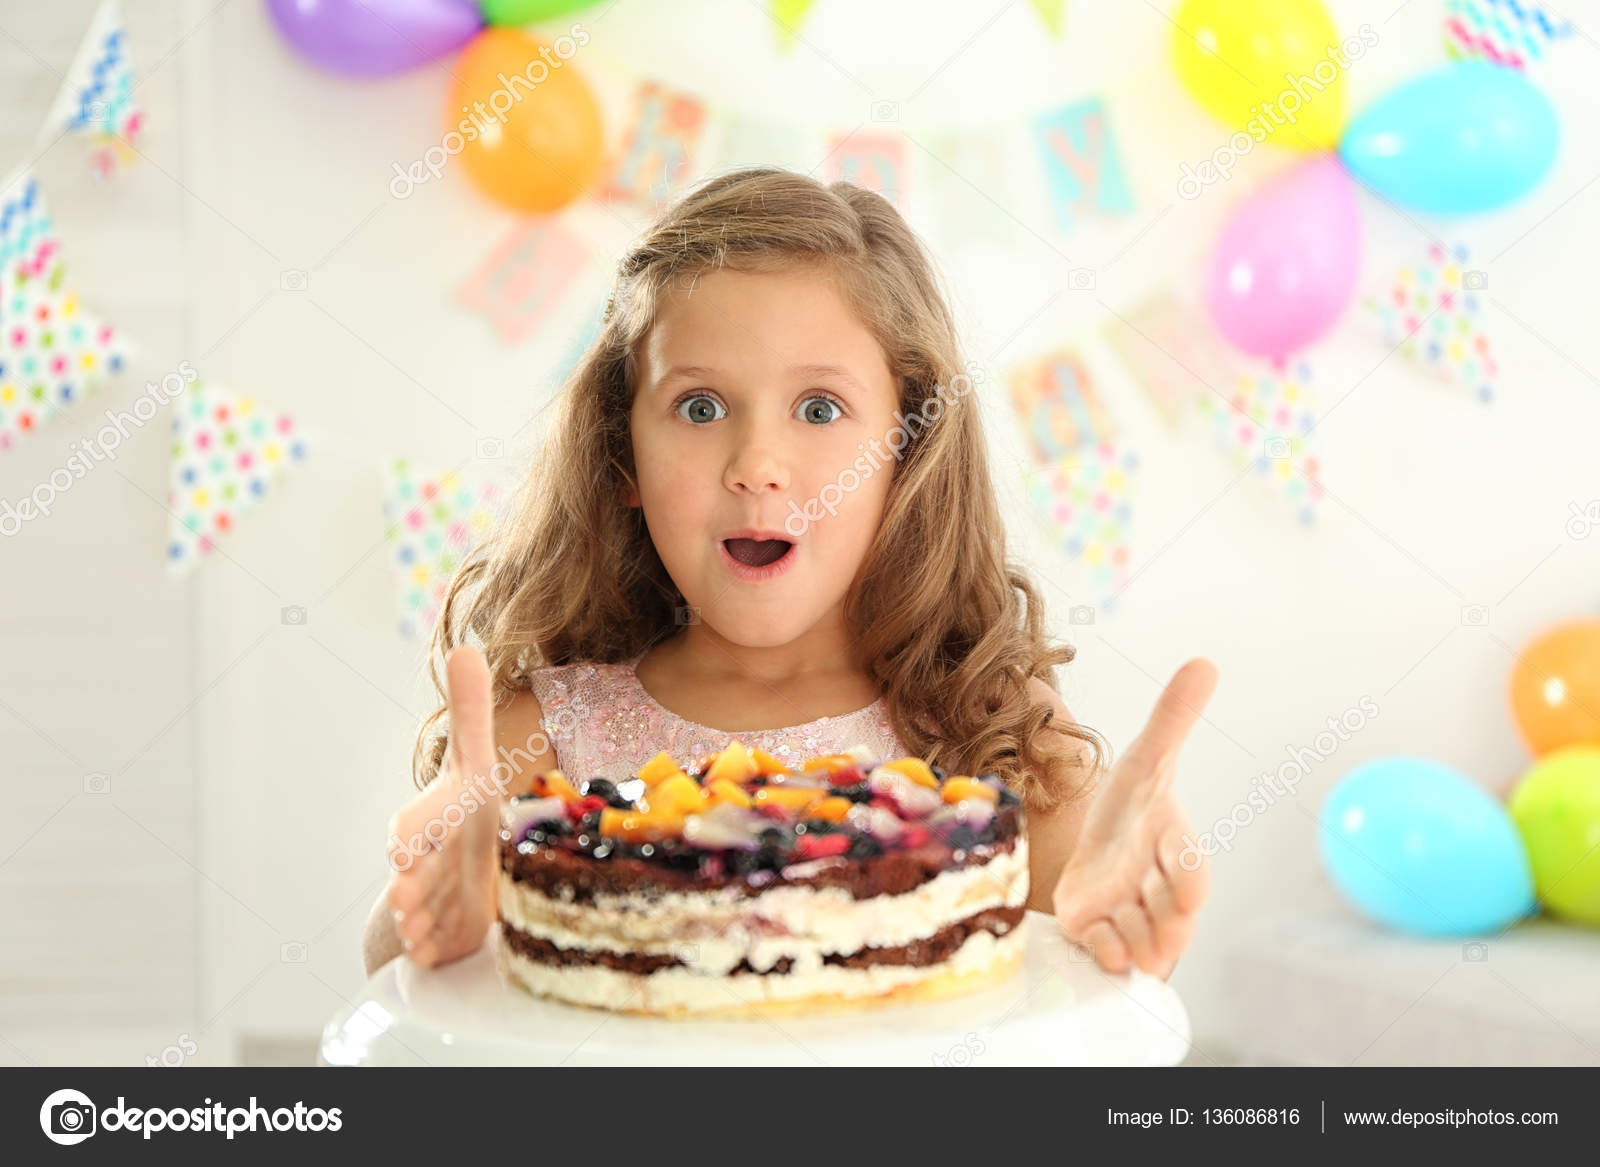 Prime Funny Little Girl Birthday Cake Home Stock Photo C Belchonock Funny Birthday Cards Online Elaedamsfinfo